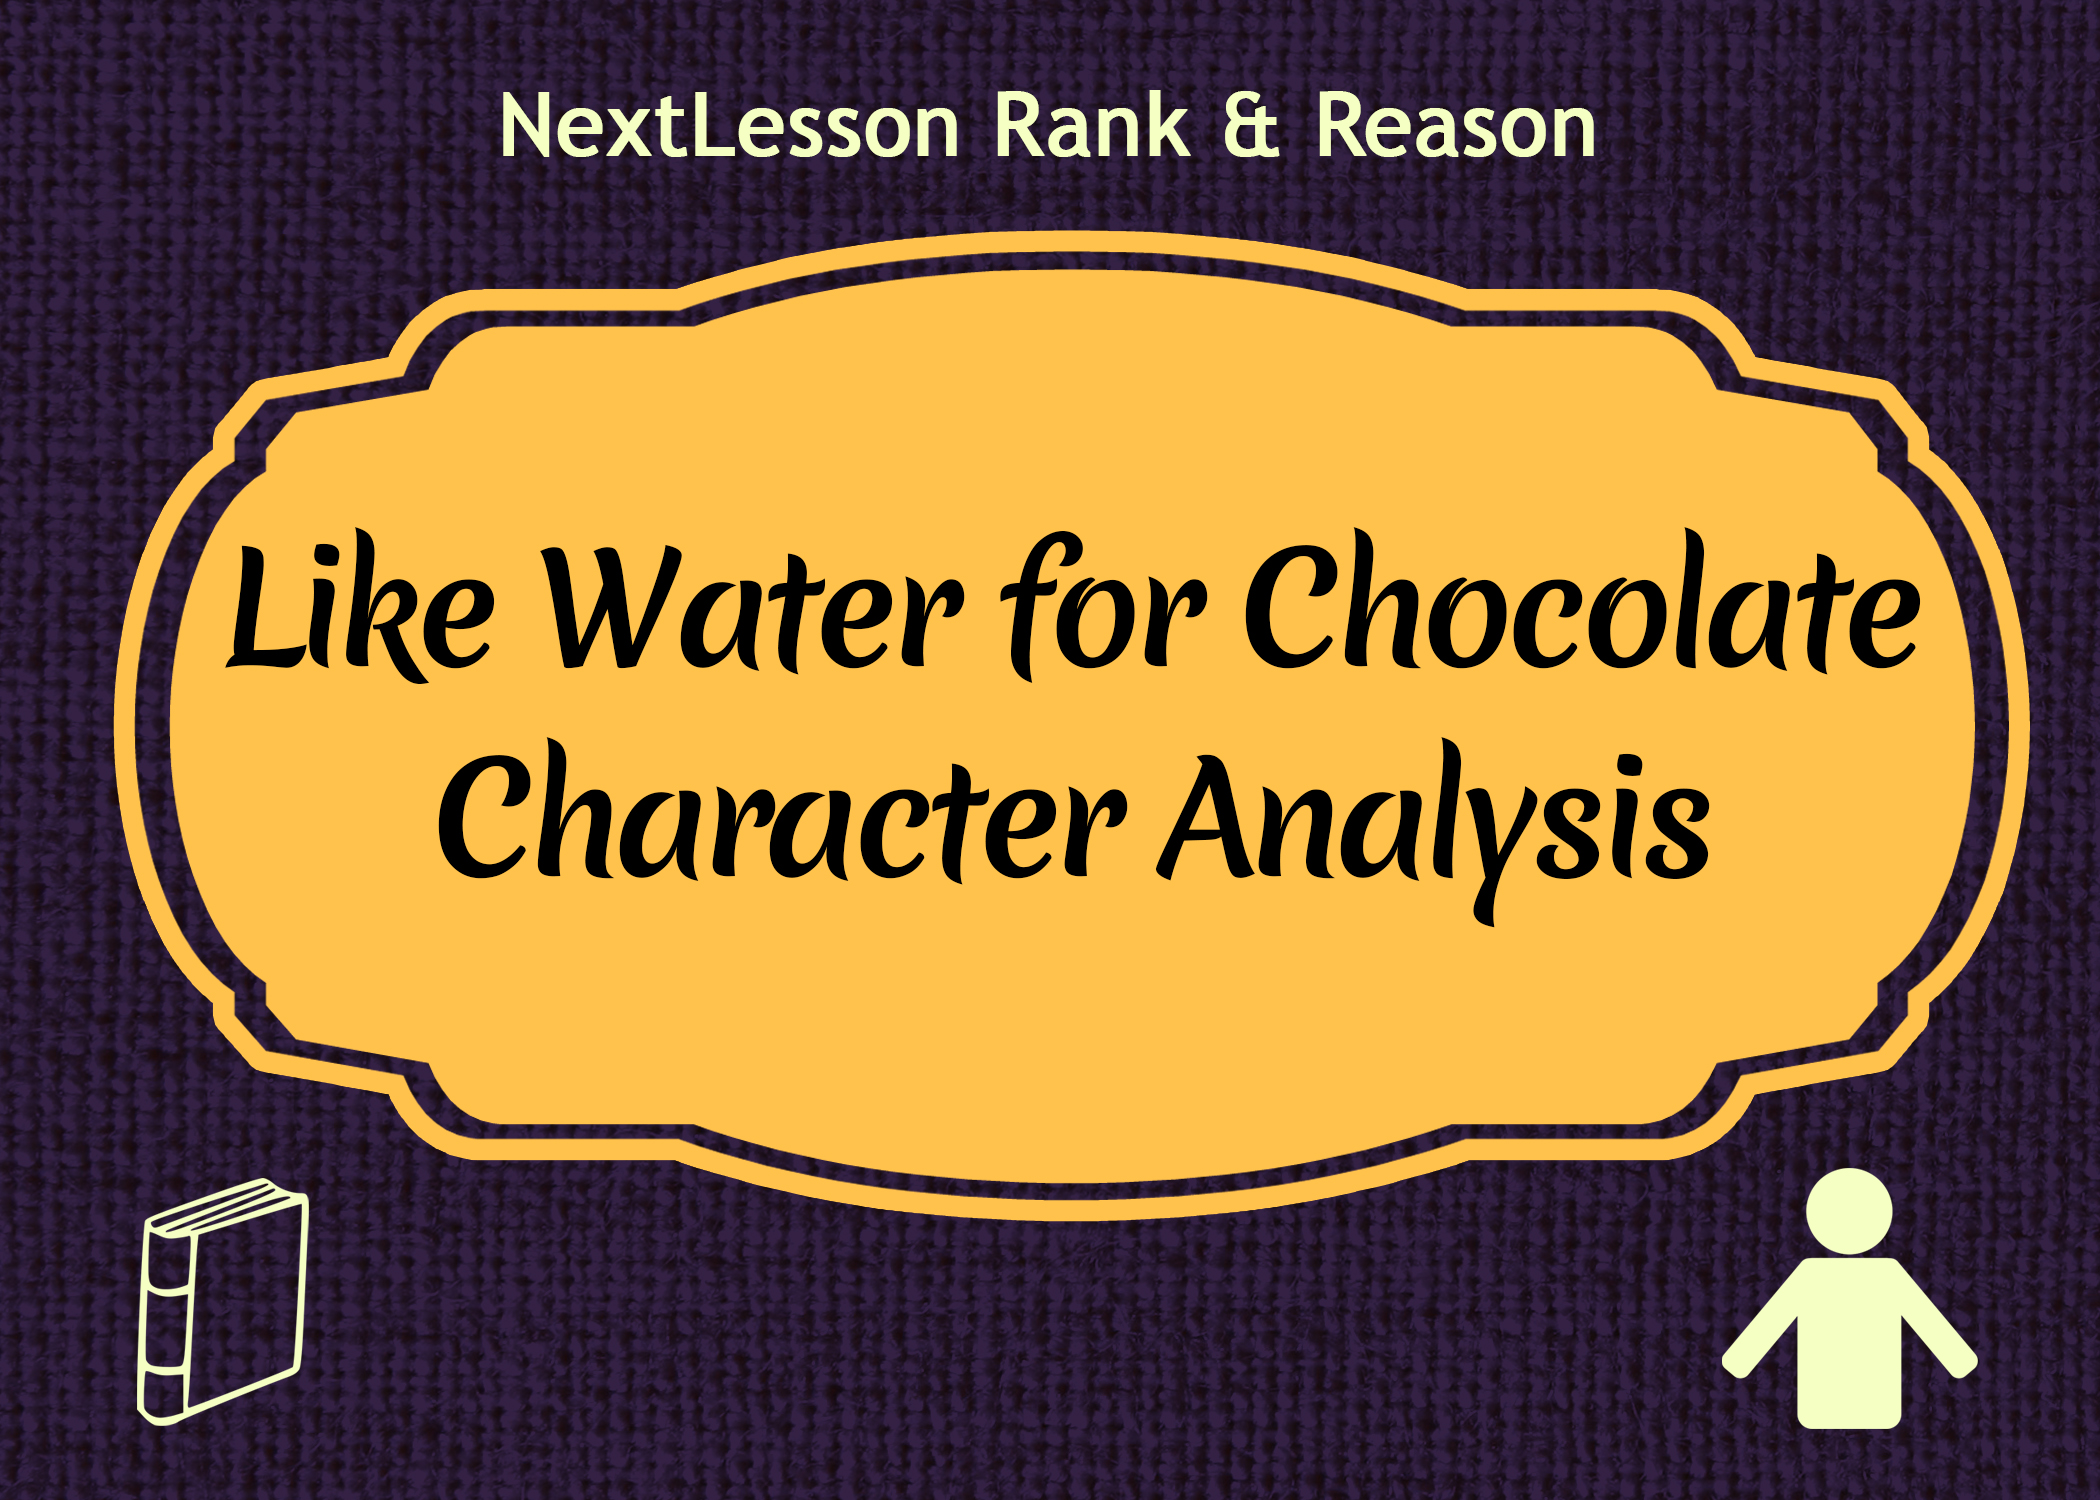 "a literary analysis of like water for chocolate by laura esquirel Magical realism in 'like water for chocolate ""like water for chocolate"" is a contemporary romantic novel by laura esquivel who decided to depict in her."